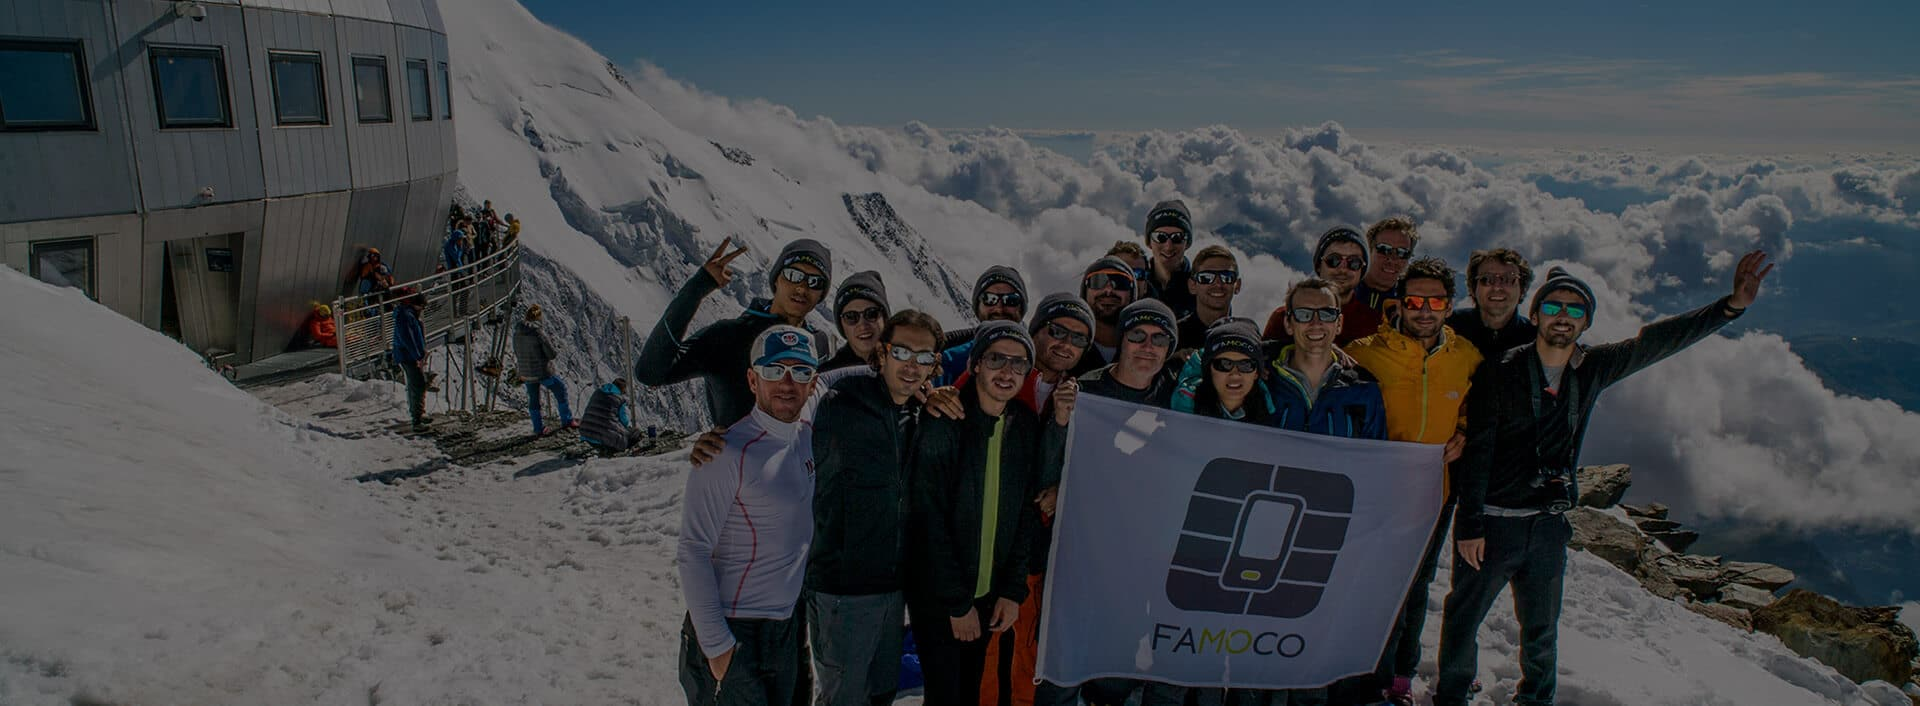 famoco_at_mont_blanc_1920x706